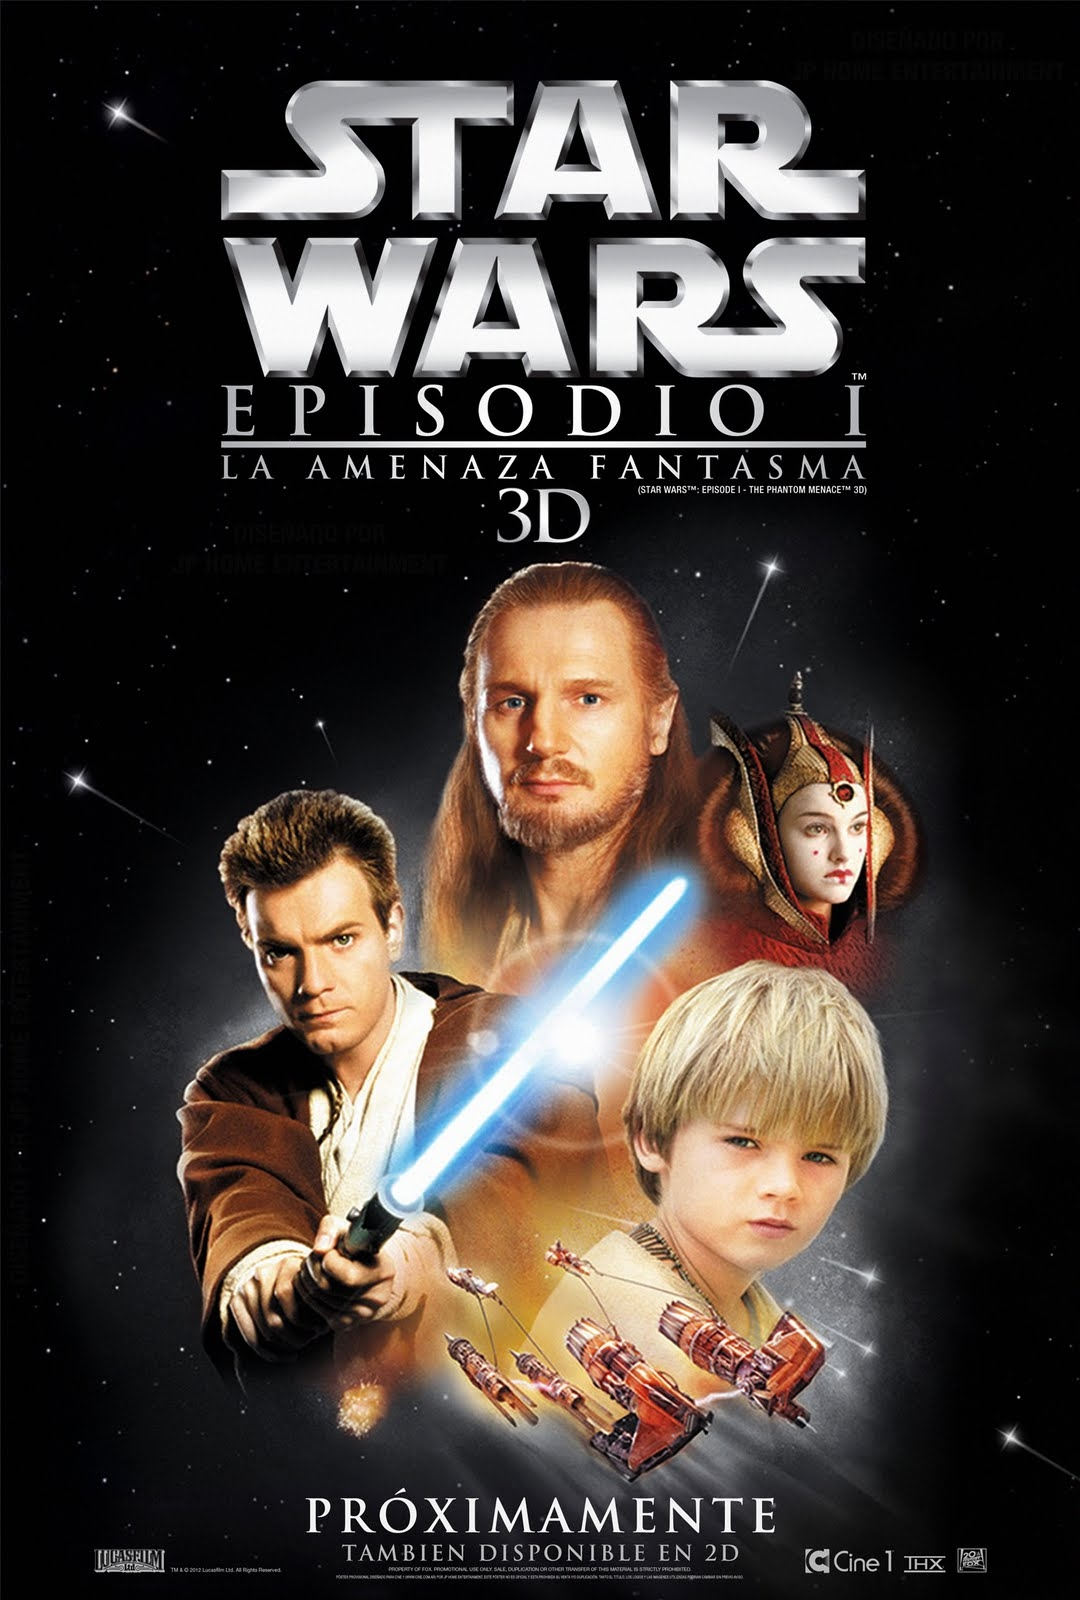 Phantom menace release date in Australia